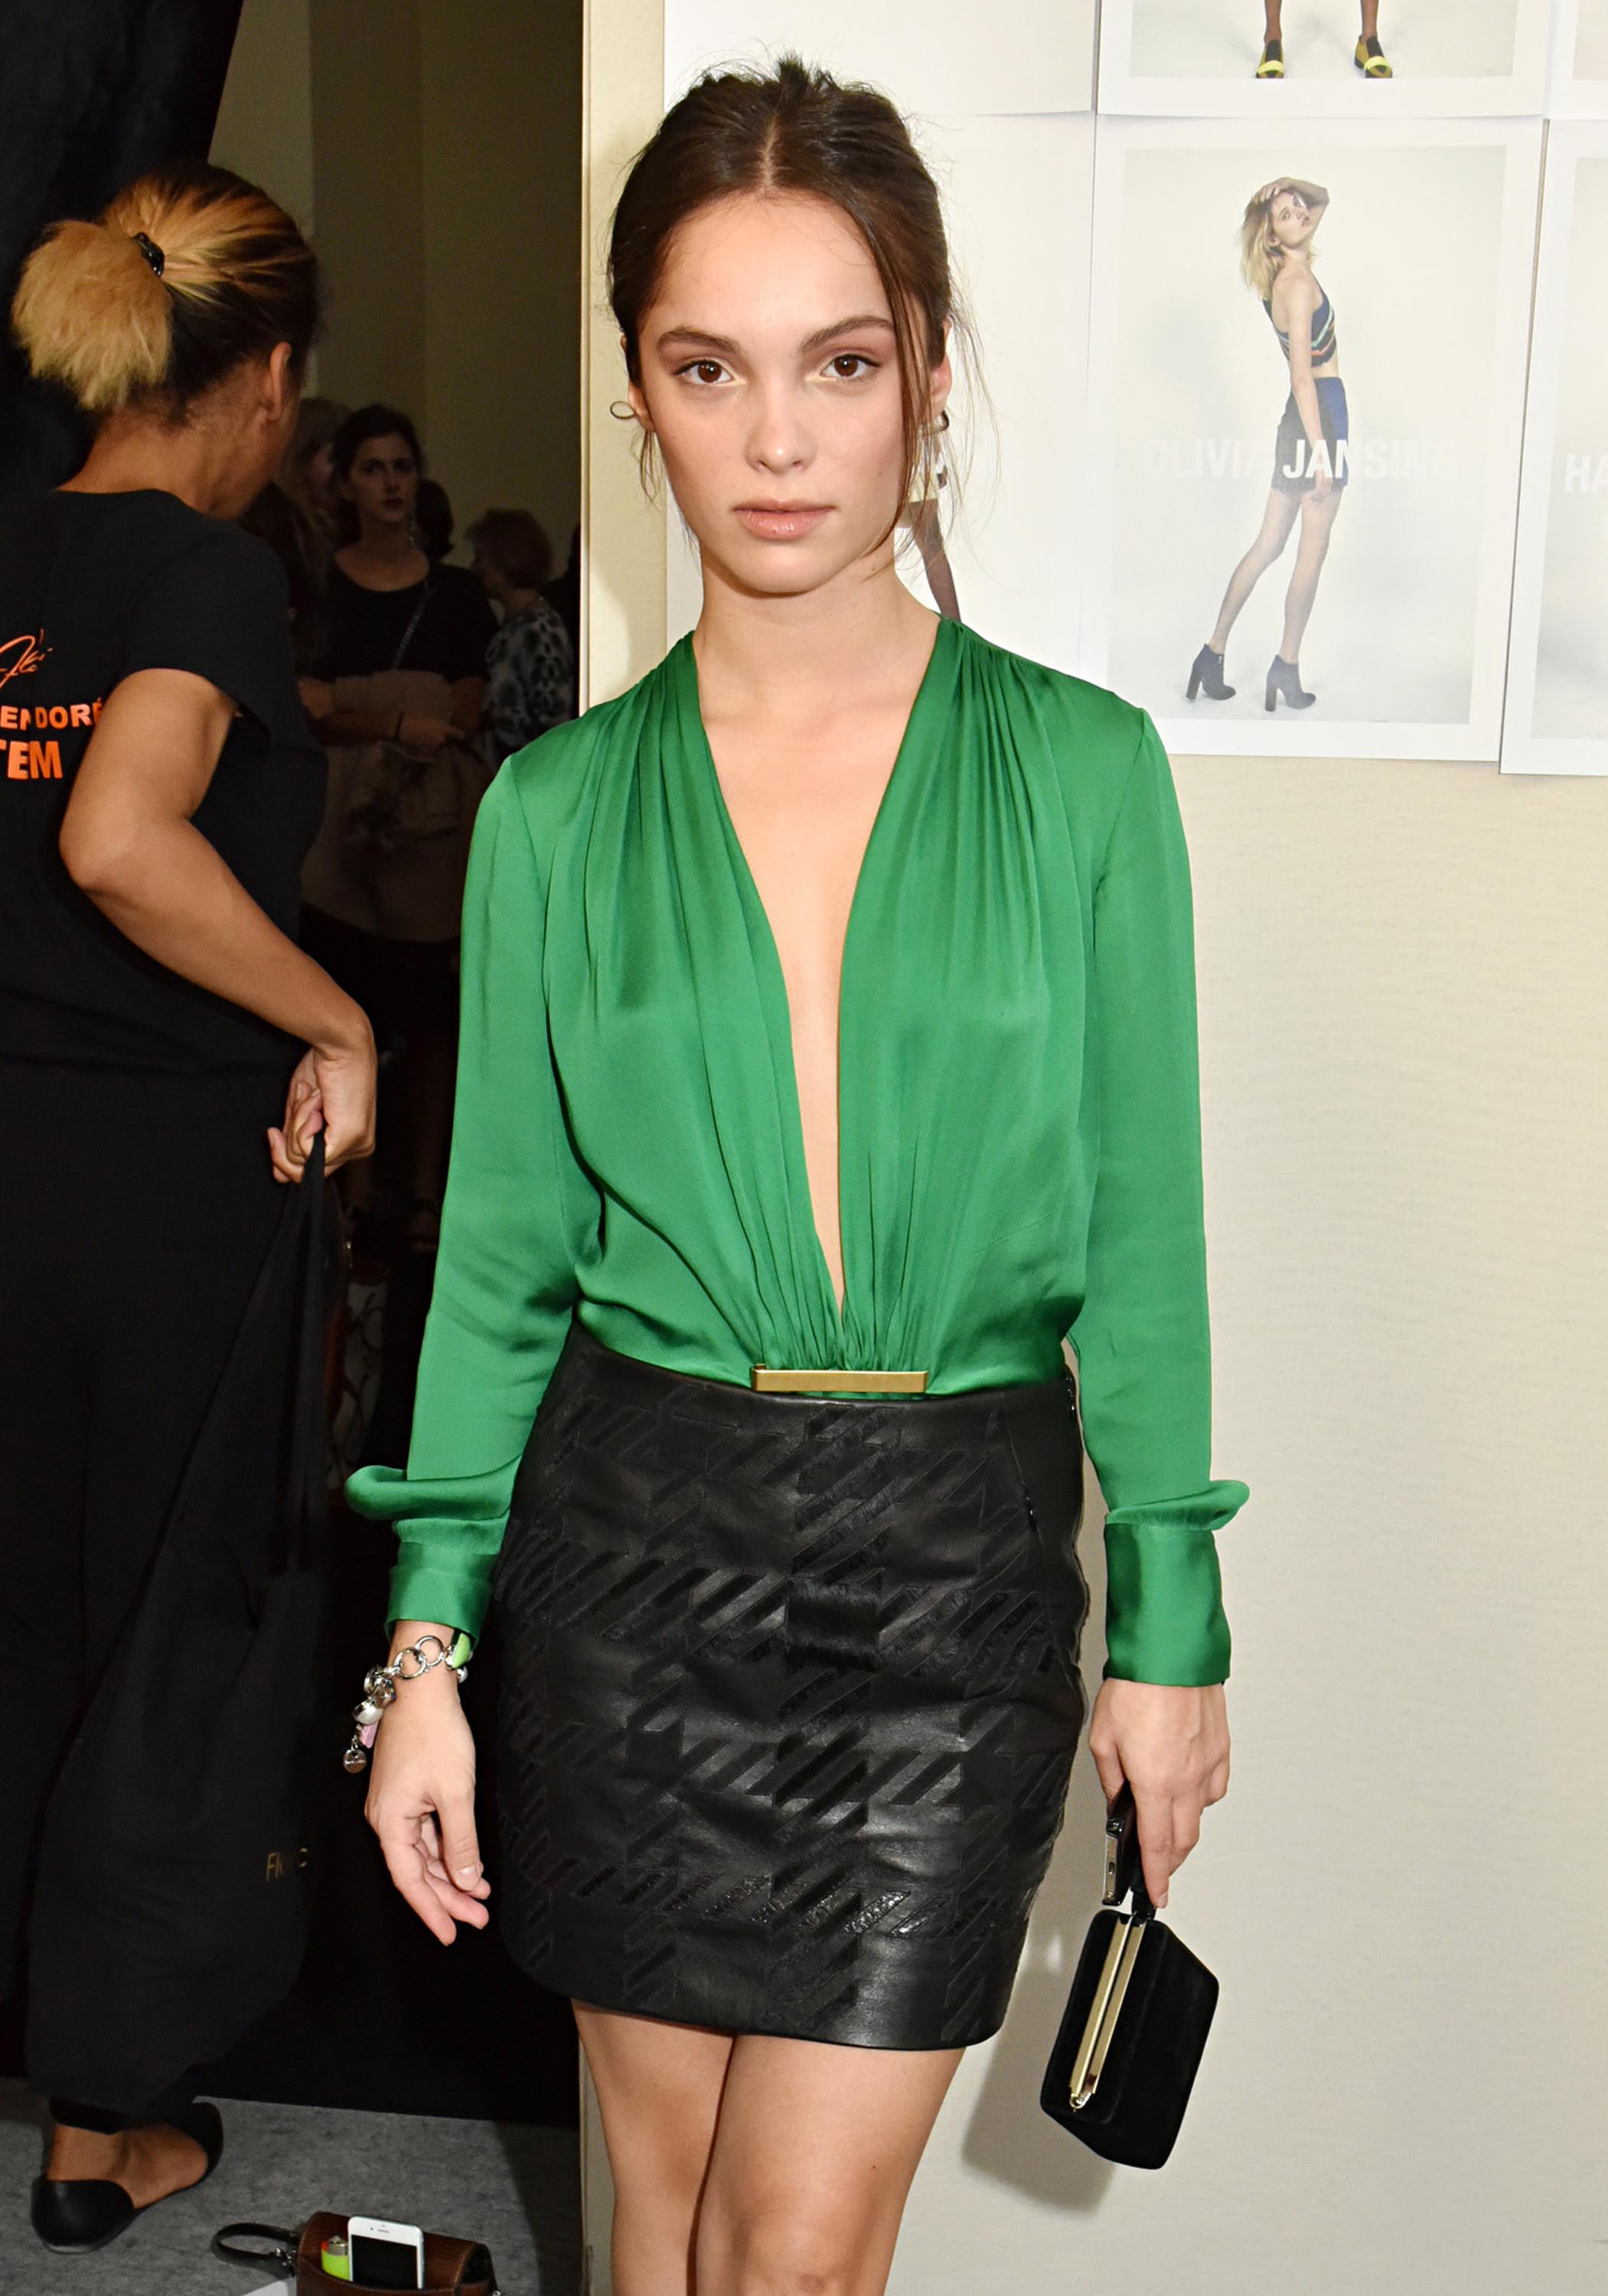 Lola Le Lann attends the Barbara Bui show - Leather